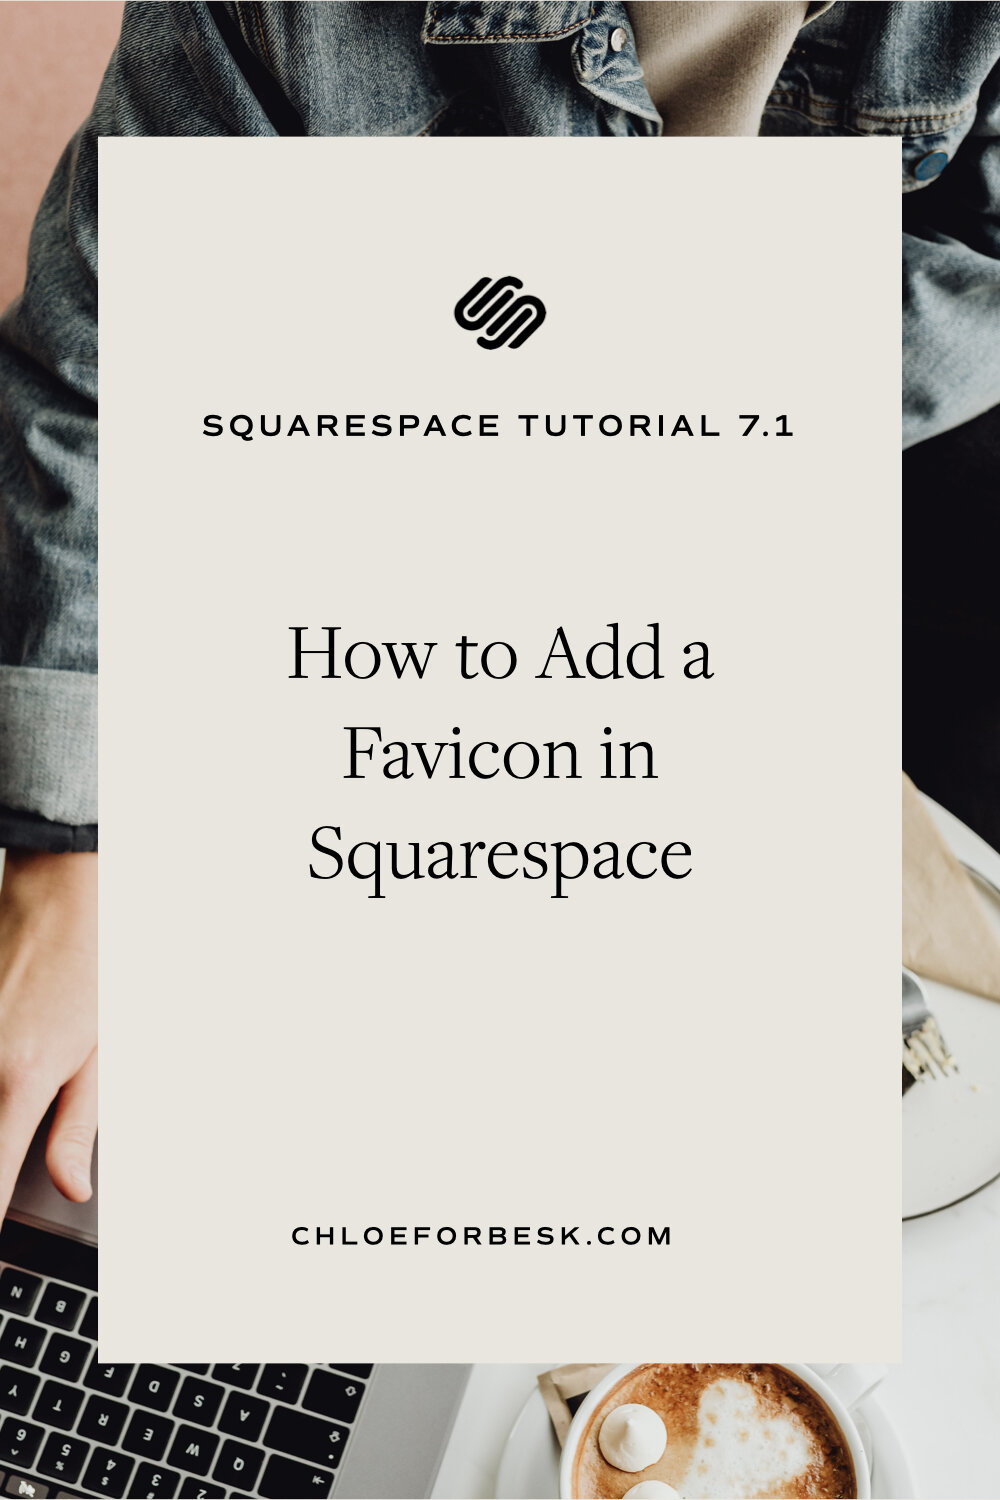 How to Add a Favicon in Squarespace — Chloë Forbes Kindlen